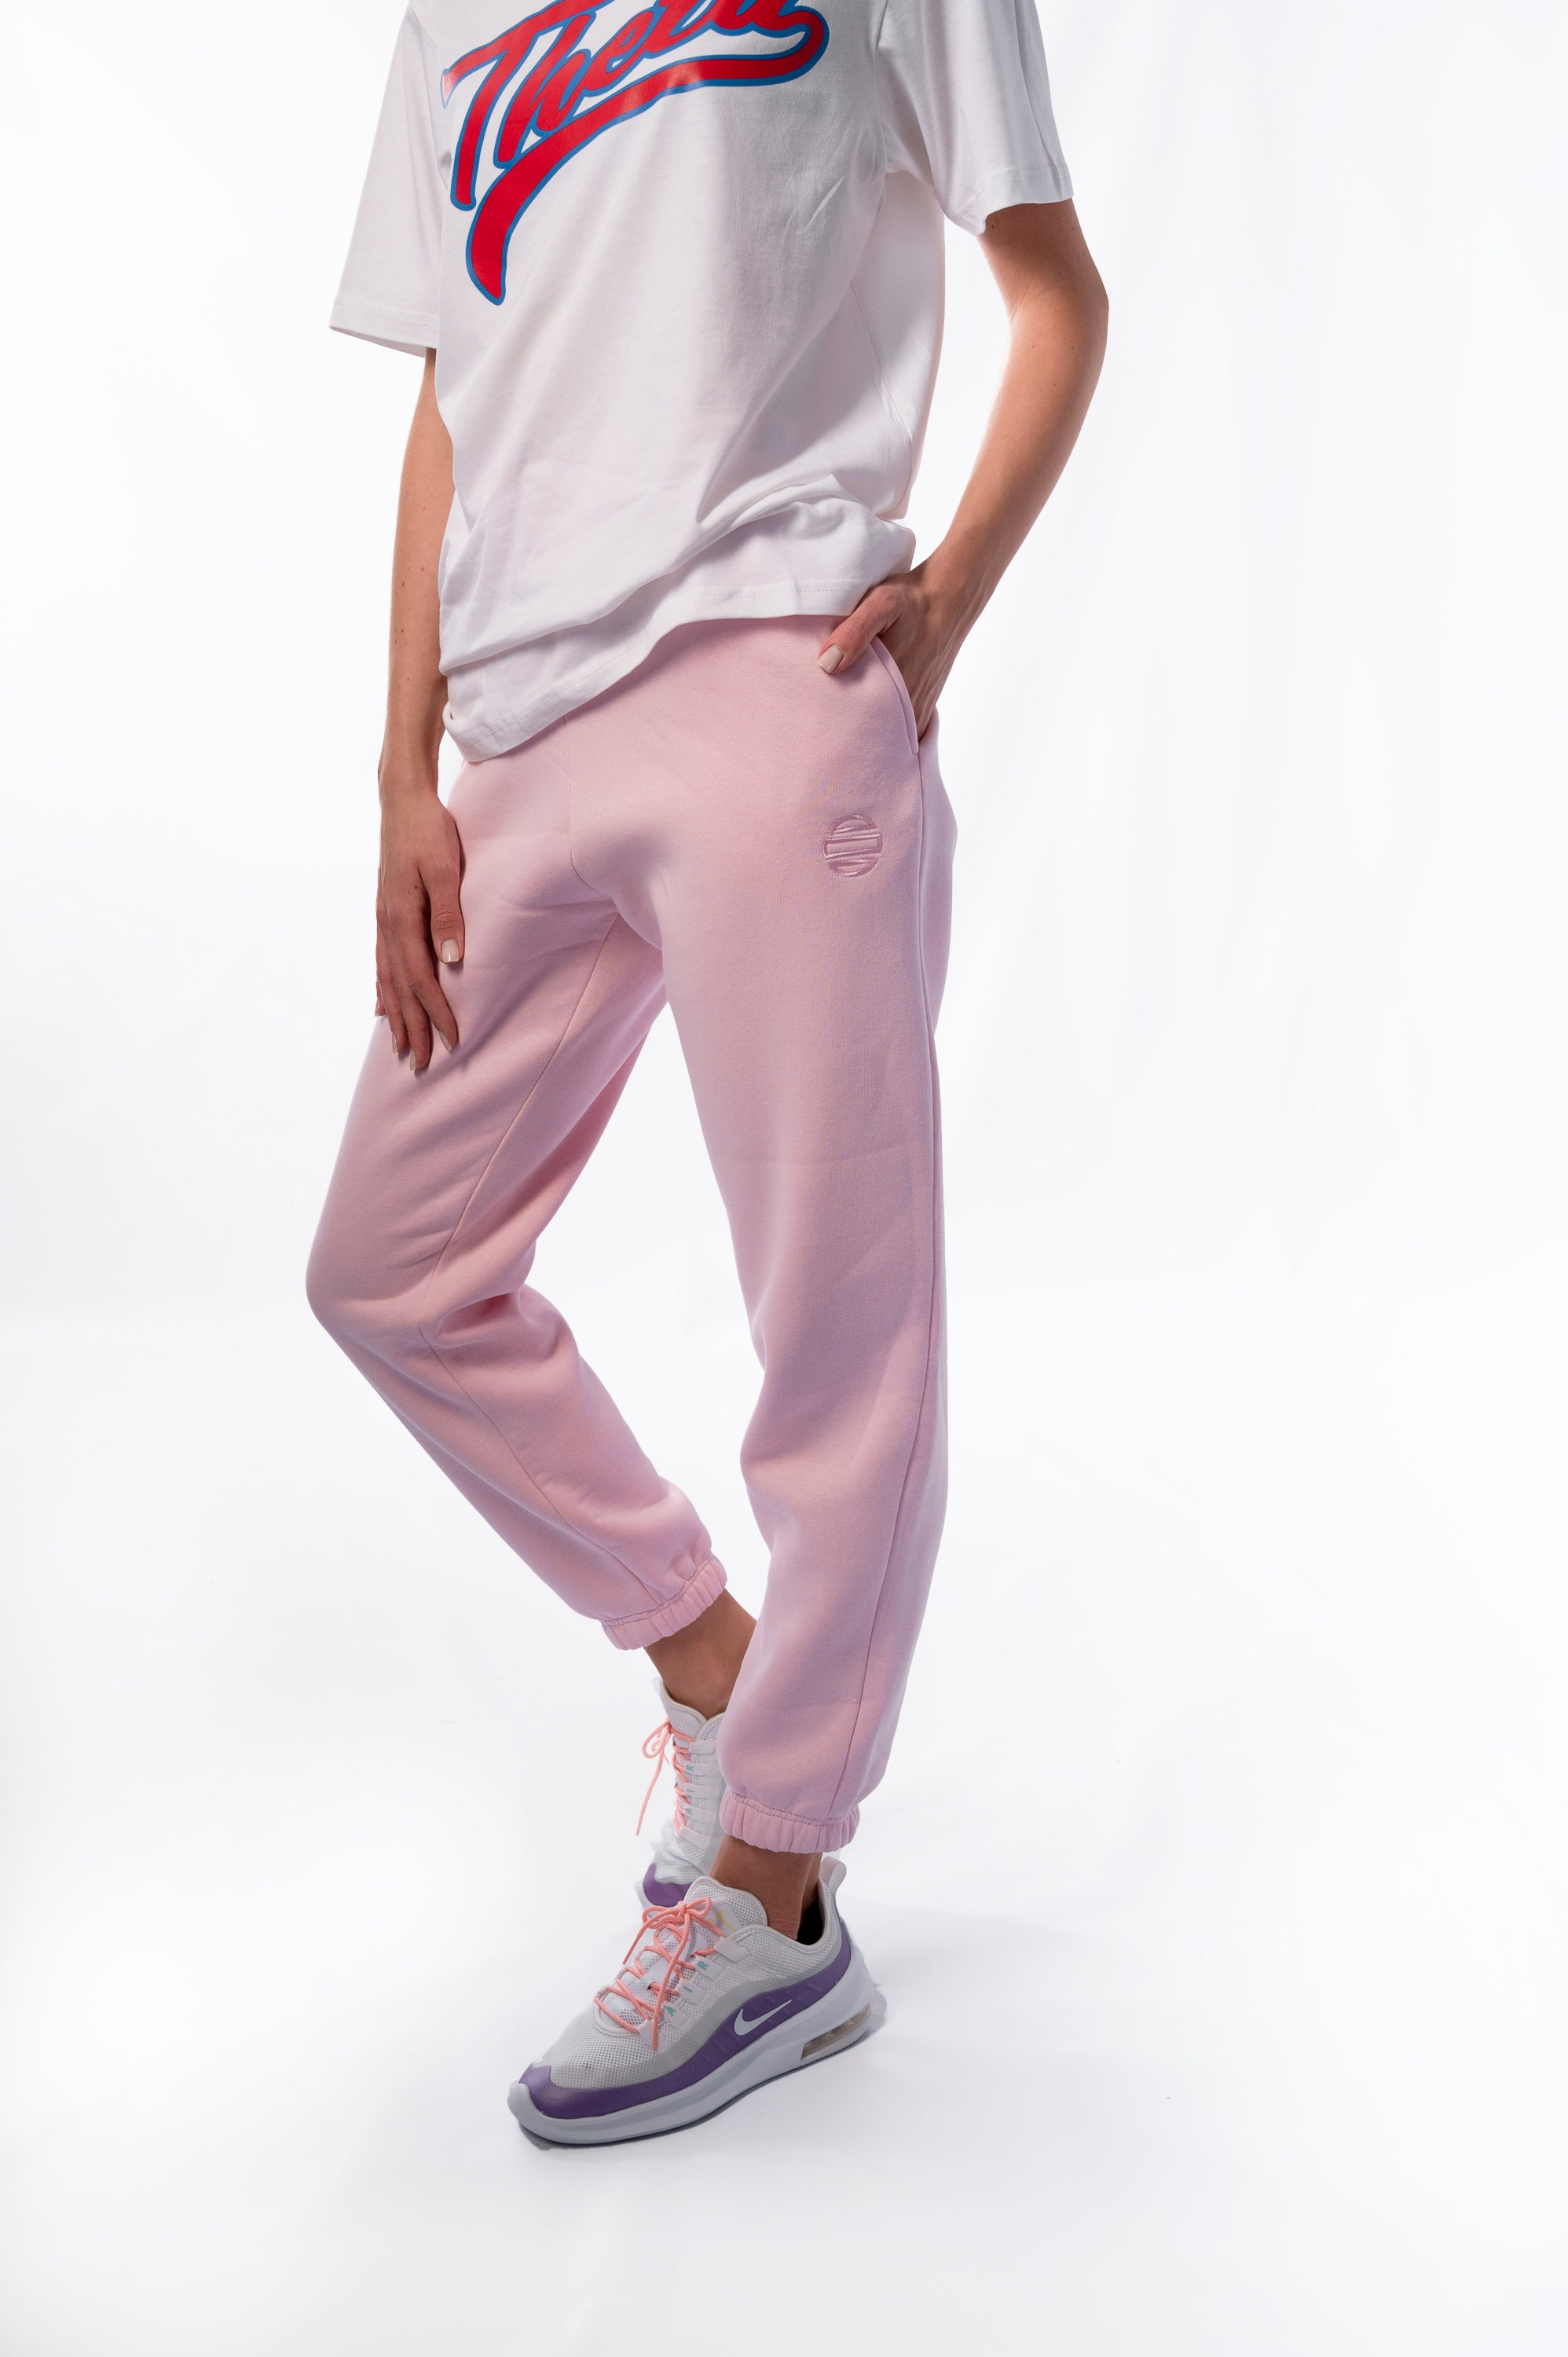 Unisex Pink Sweatpants